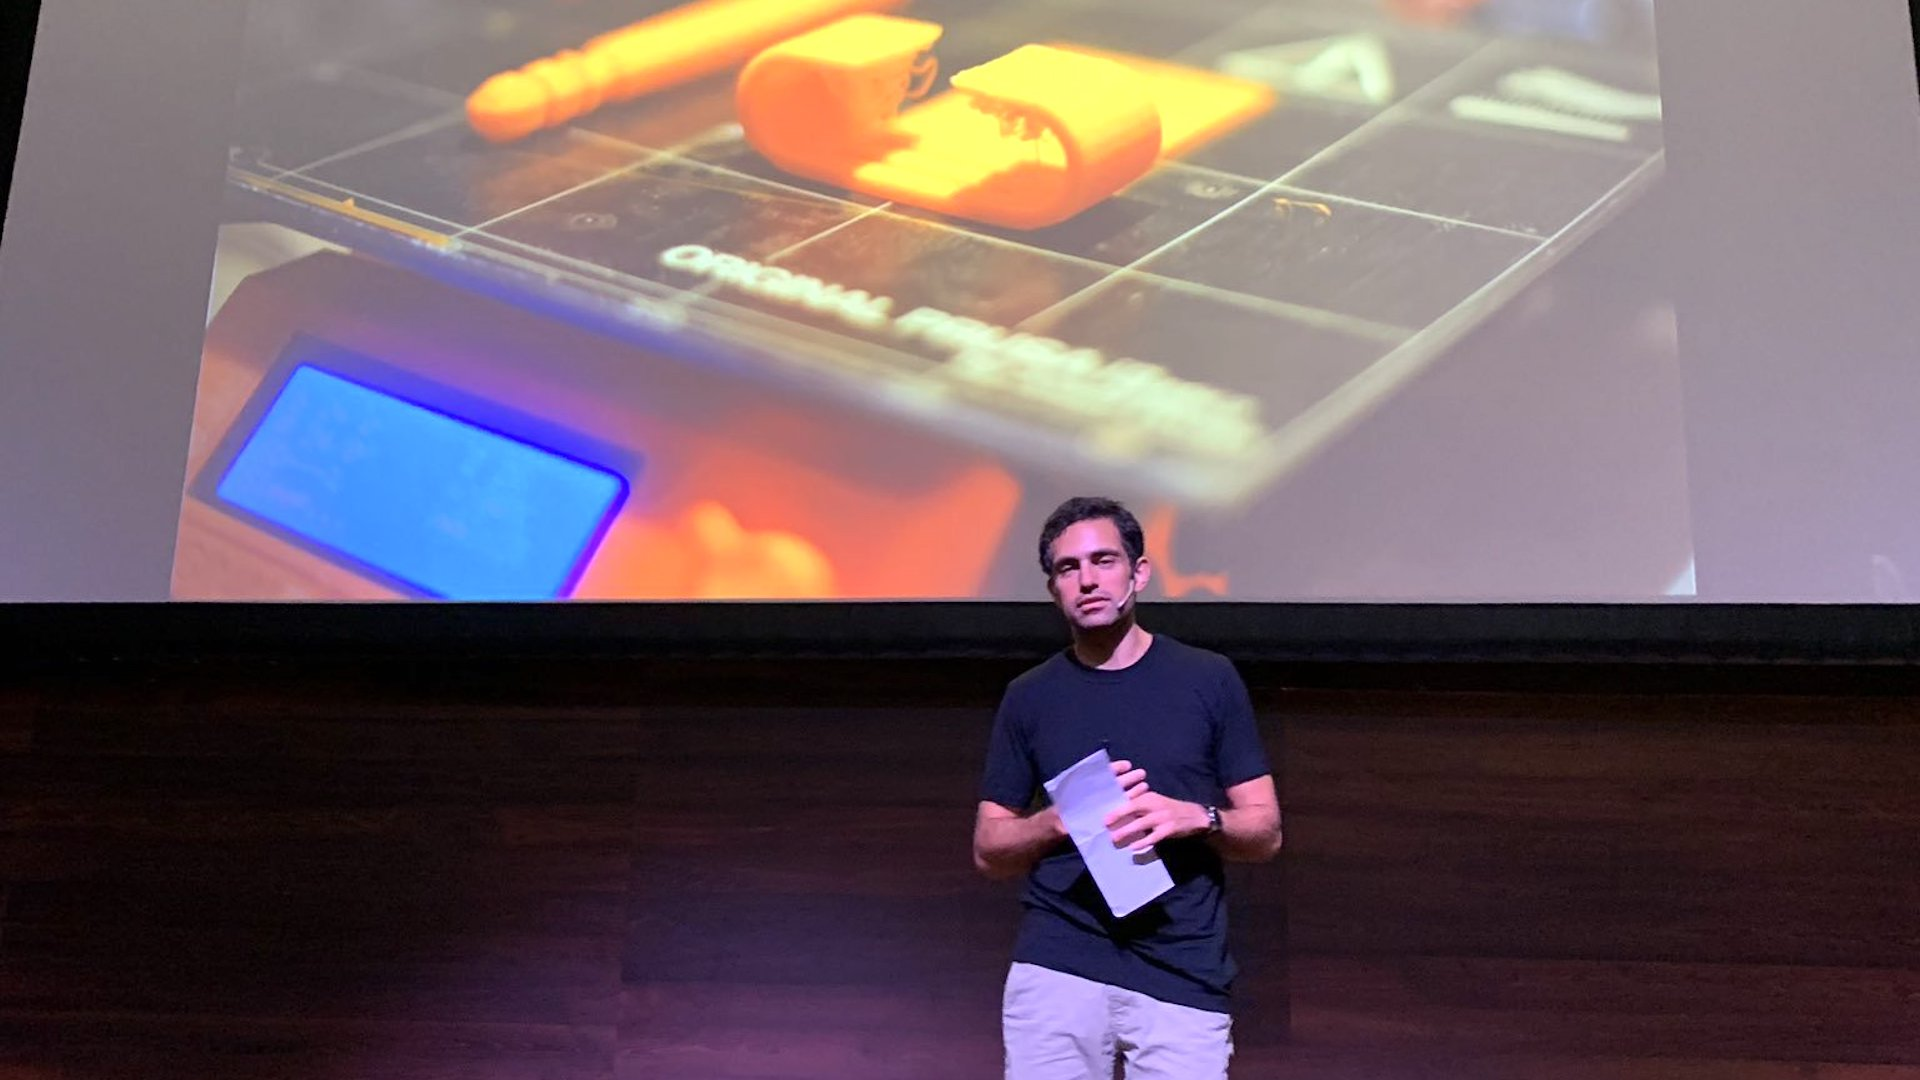 Tarek Loubani on-stage in-front of an image of a 3D Printer he uses to improve battlefield medicine